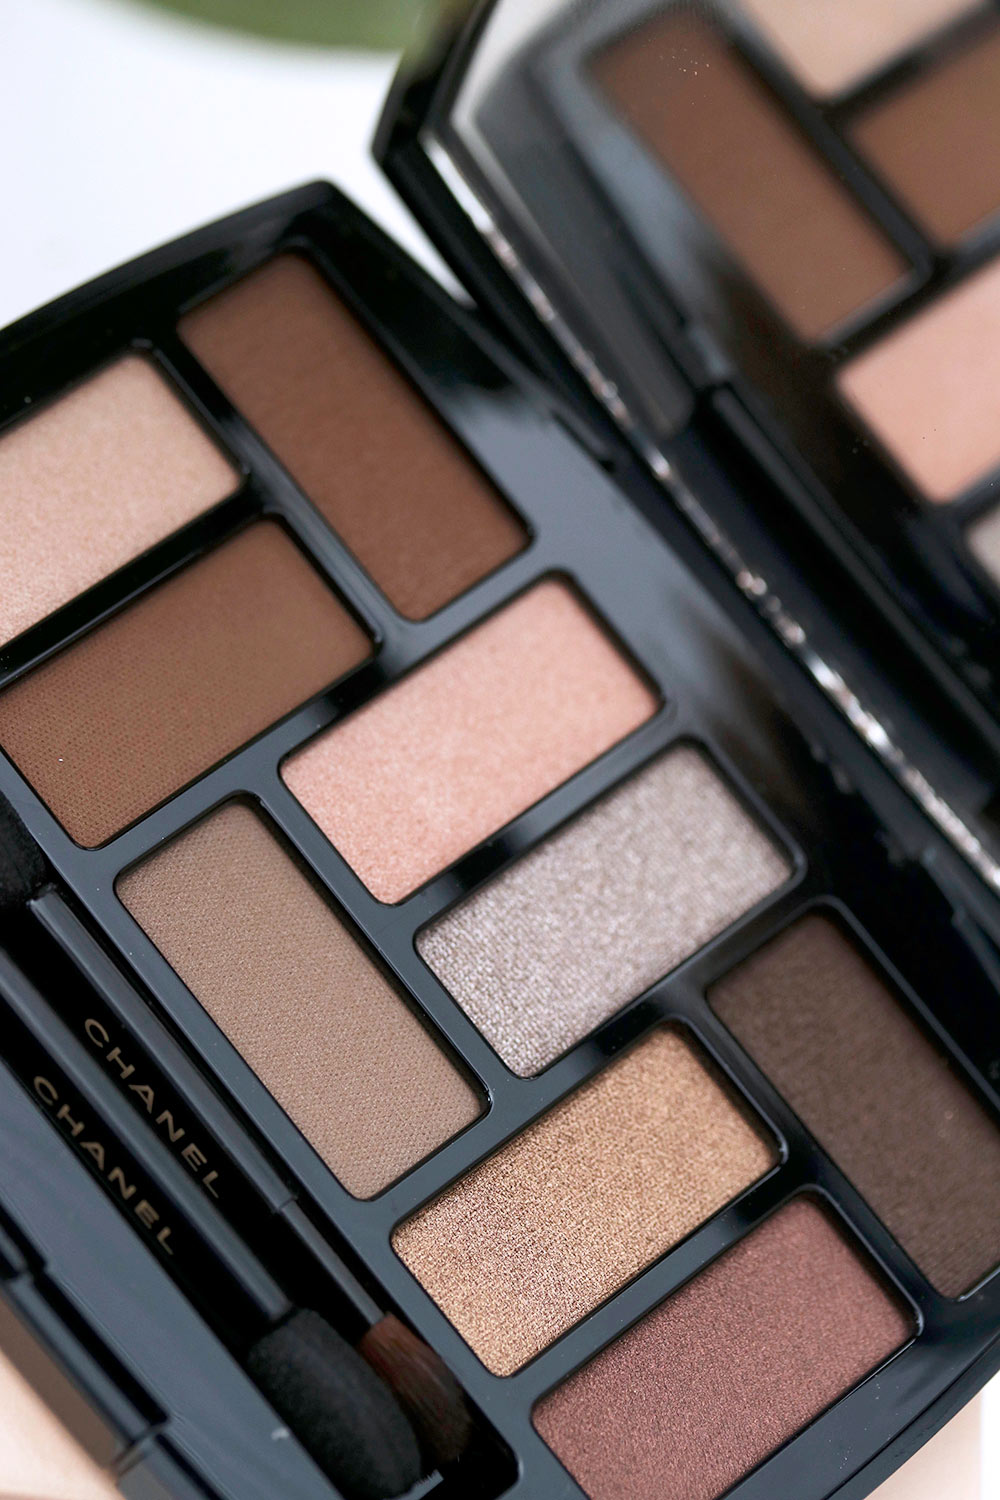 Beauty Tips For Hair: The Chanel Les Beiges Natural Eyeshadow Palette